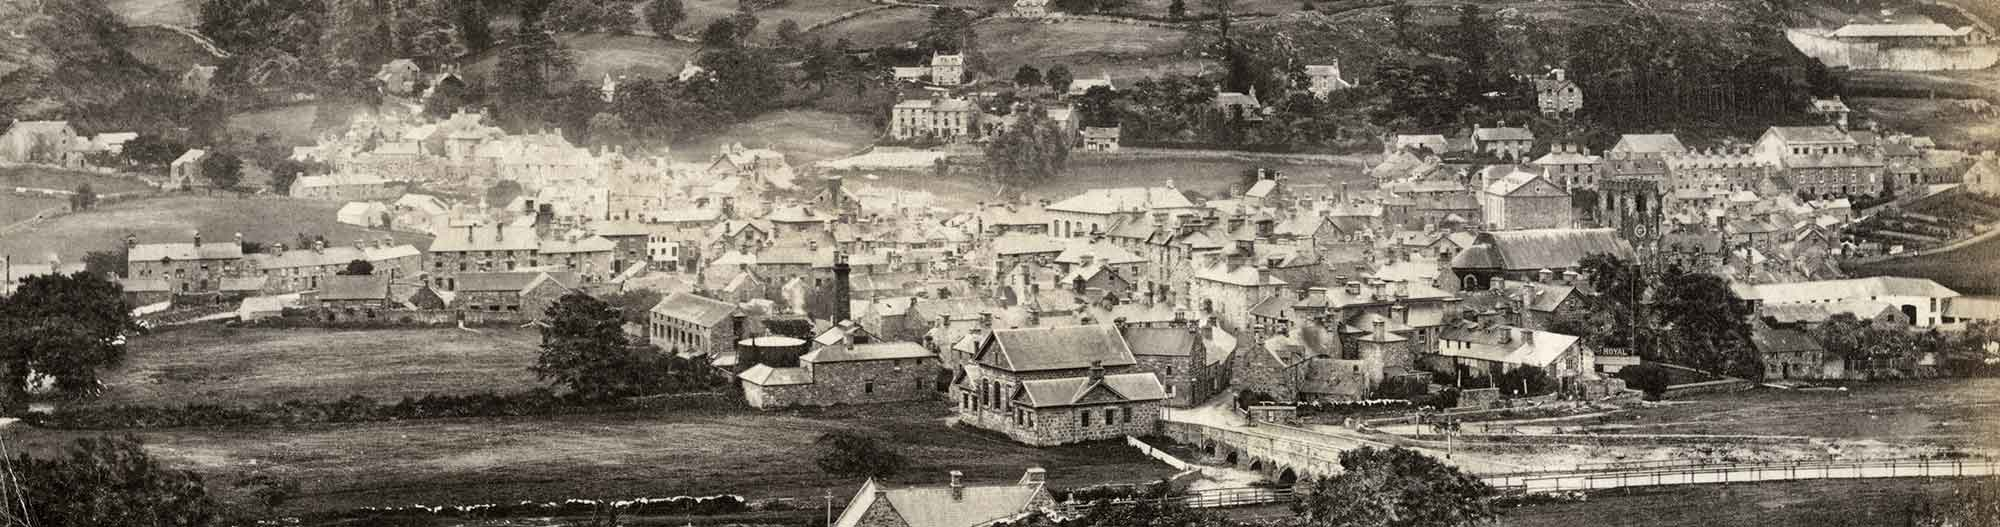 An Albumen Photo of Dolgellau from the 1870s